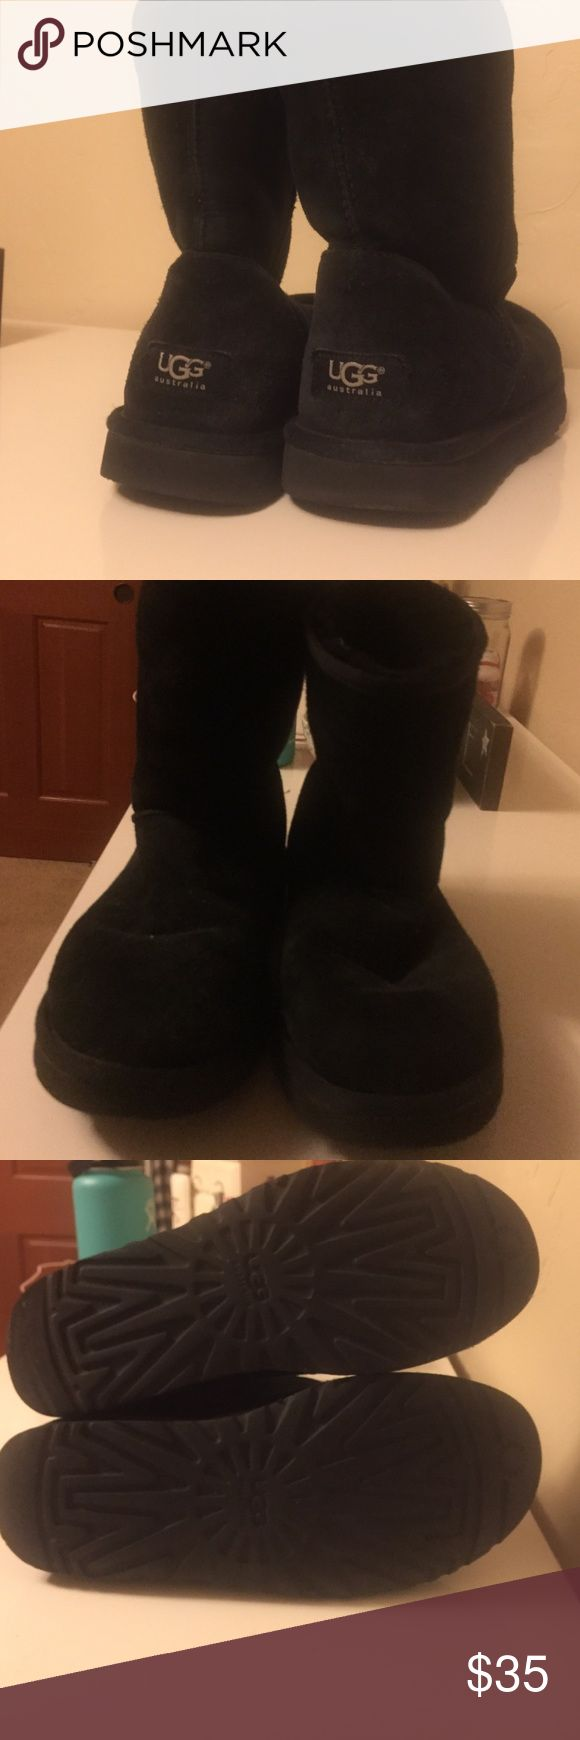 Short Black Ugg Boots Lightly used Black Uggs! No sign of wear and tear, super cute and comfy! UGG Shoes Winter & Rain Boots